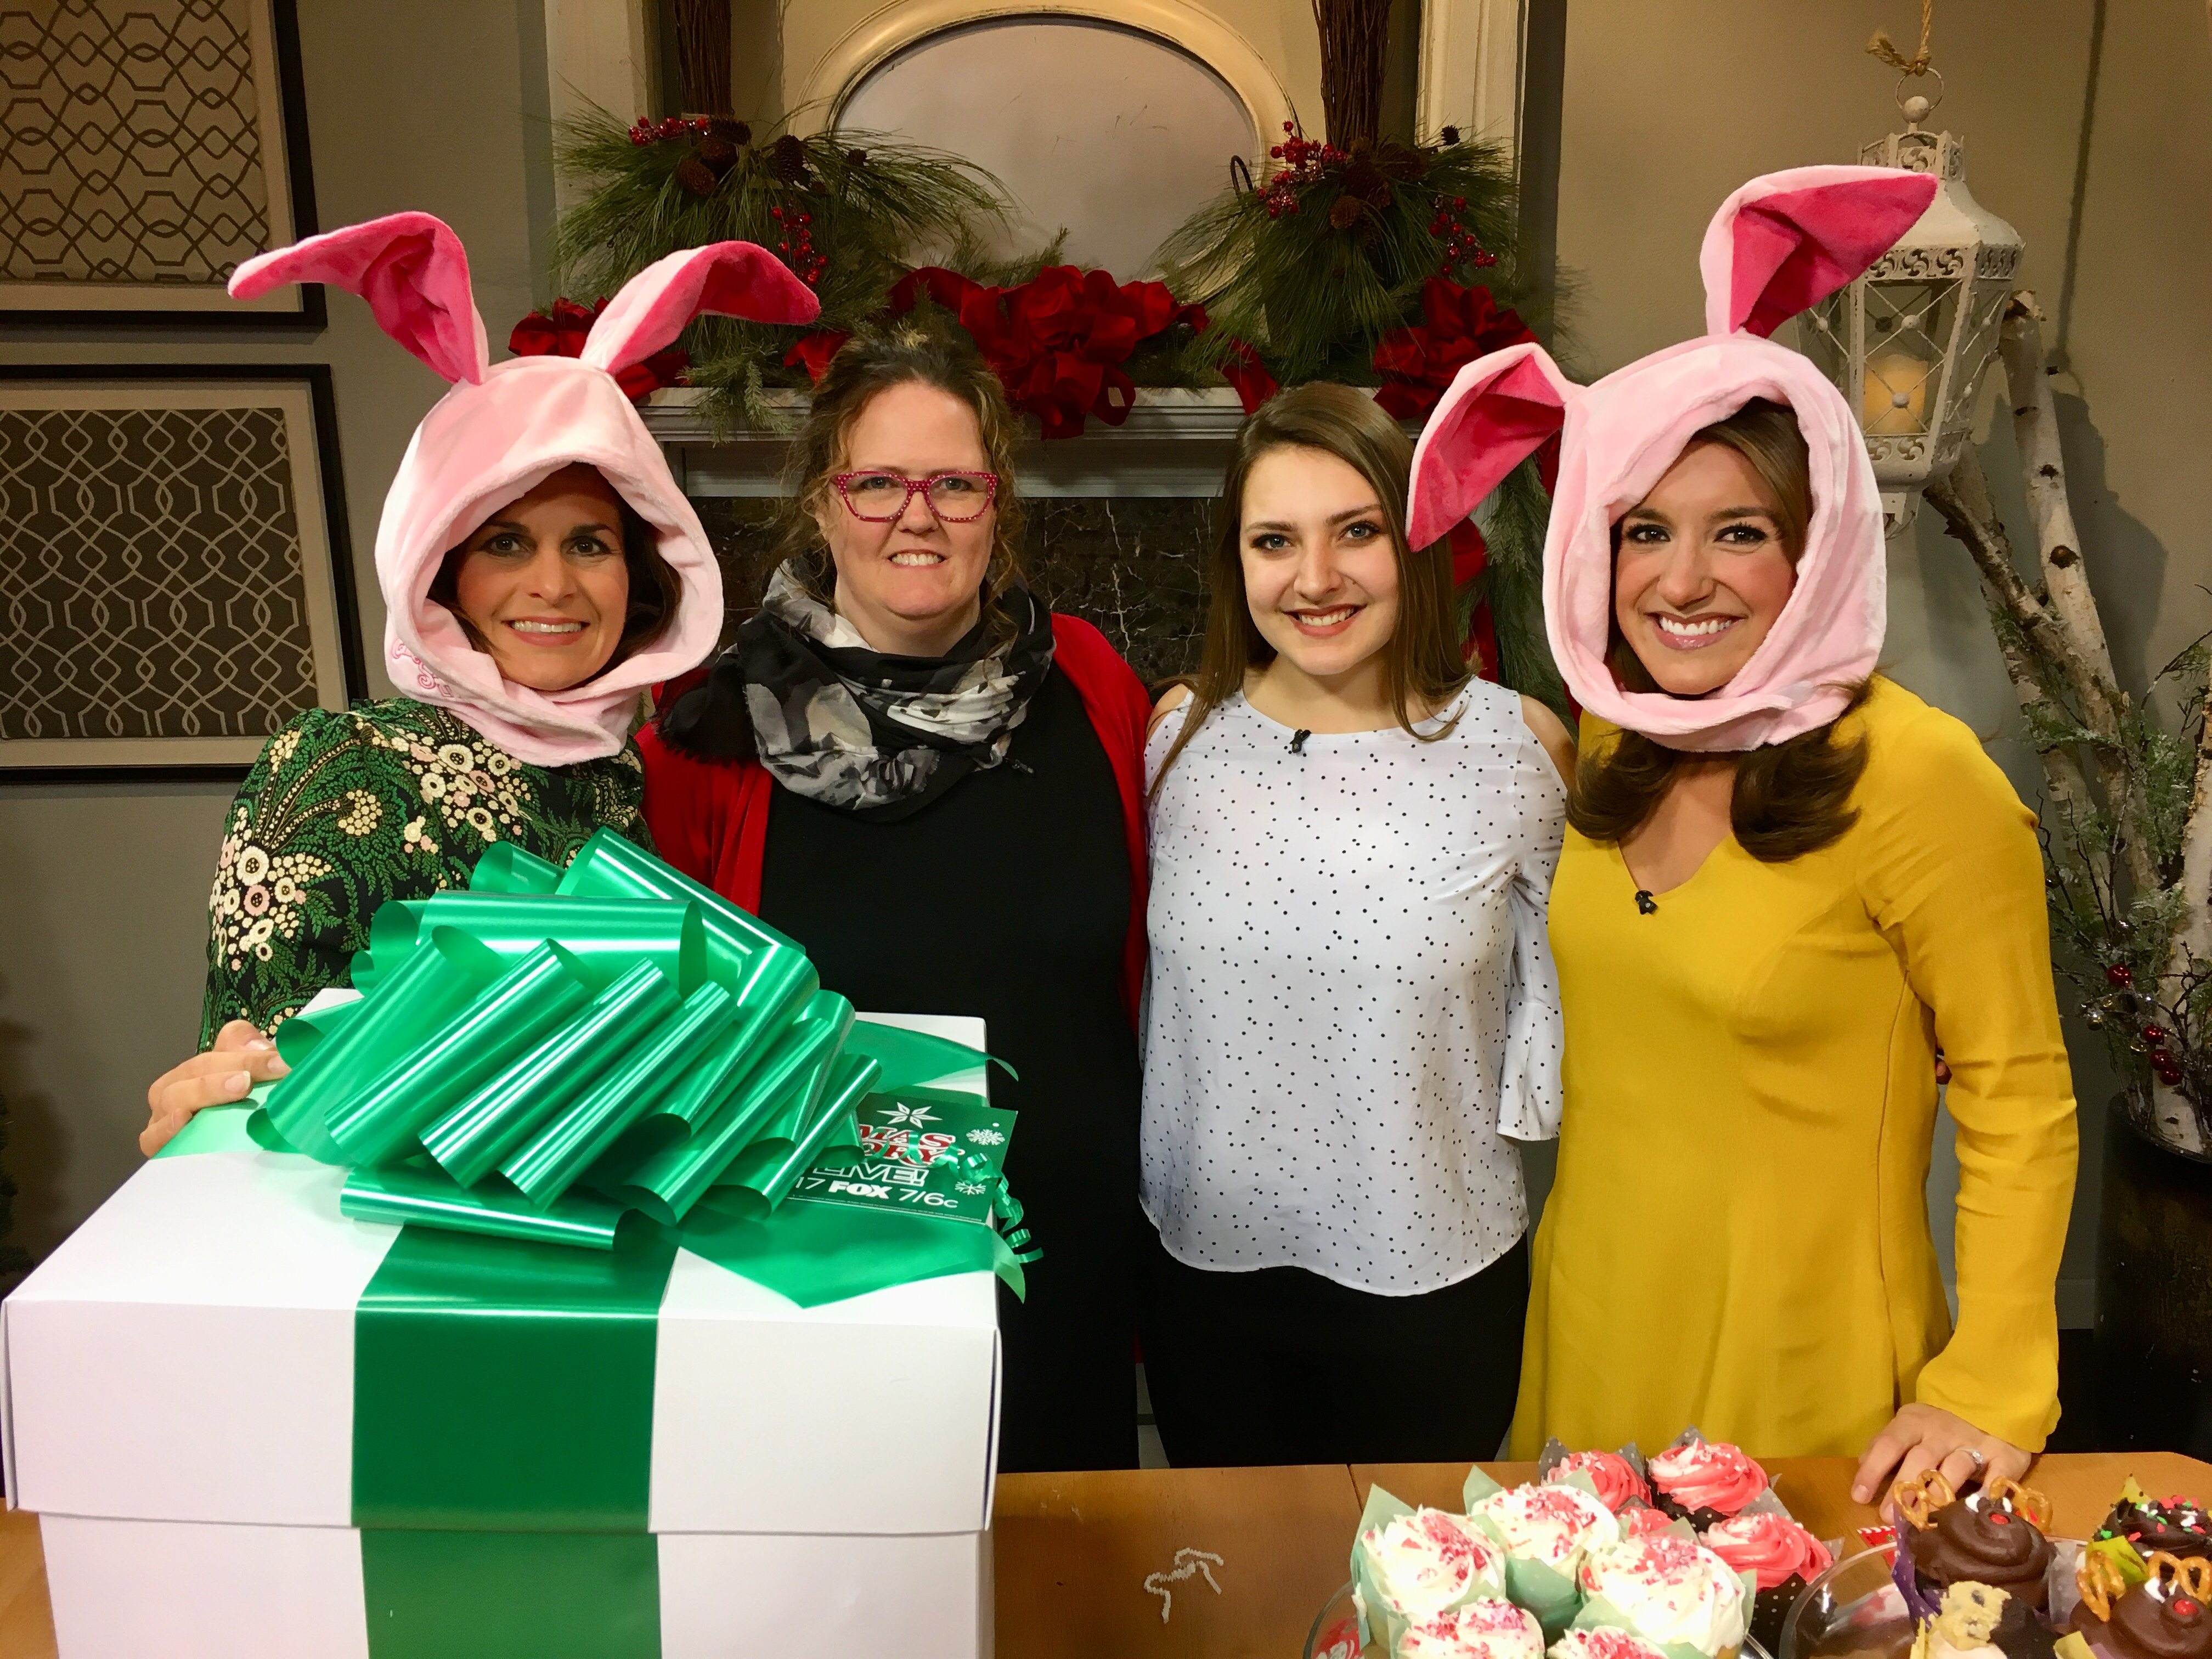 Tamara's The Cake Guru makes sweet treats for fans of A Christmas Story -  movie, musical and live version.{&amp;nbsp;} (Photo: Rachel Manek/WLUK)<p></p>